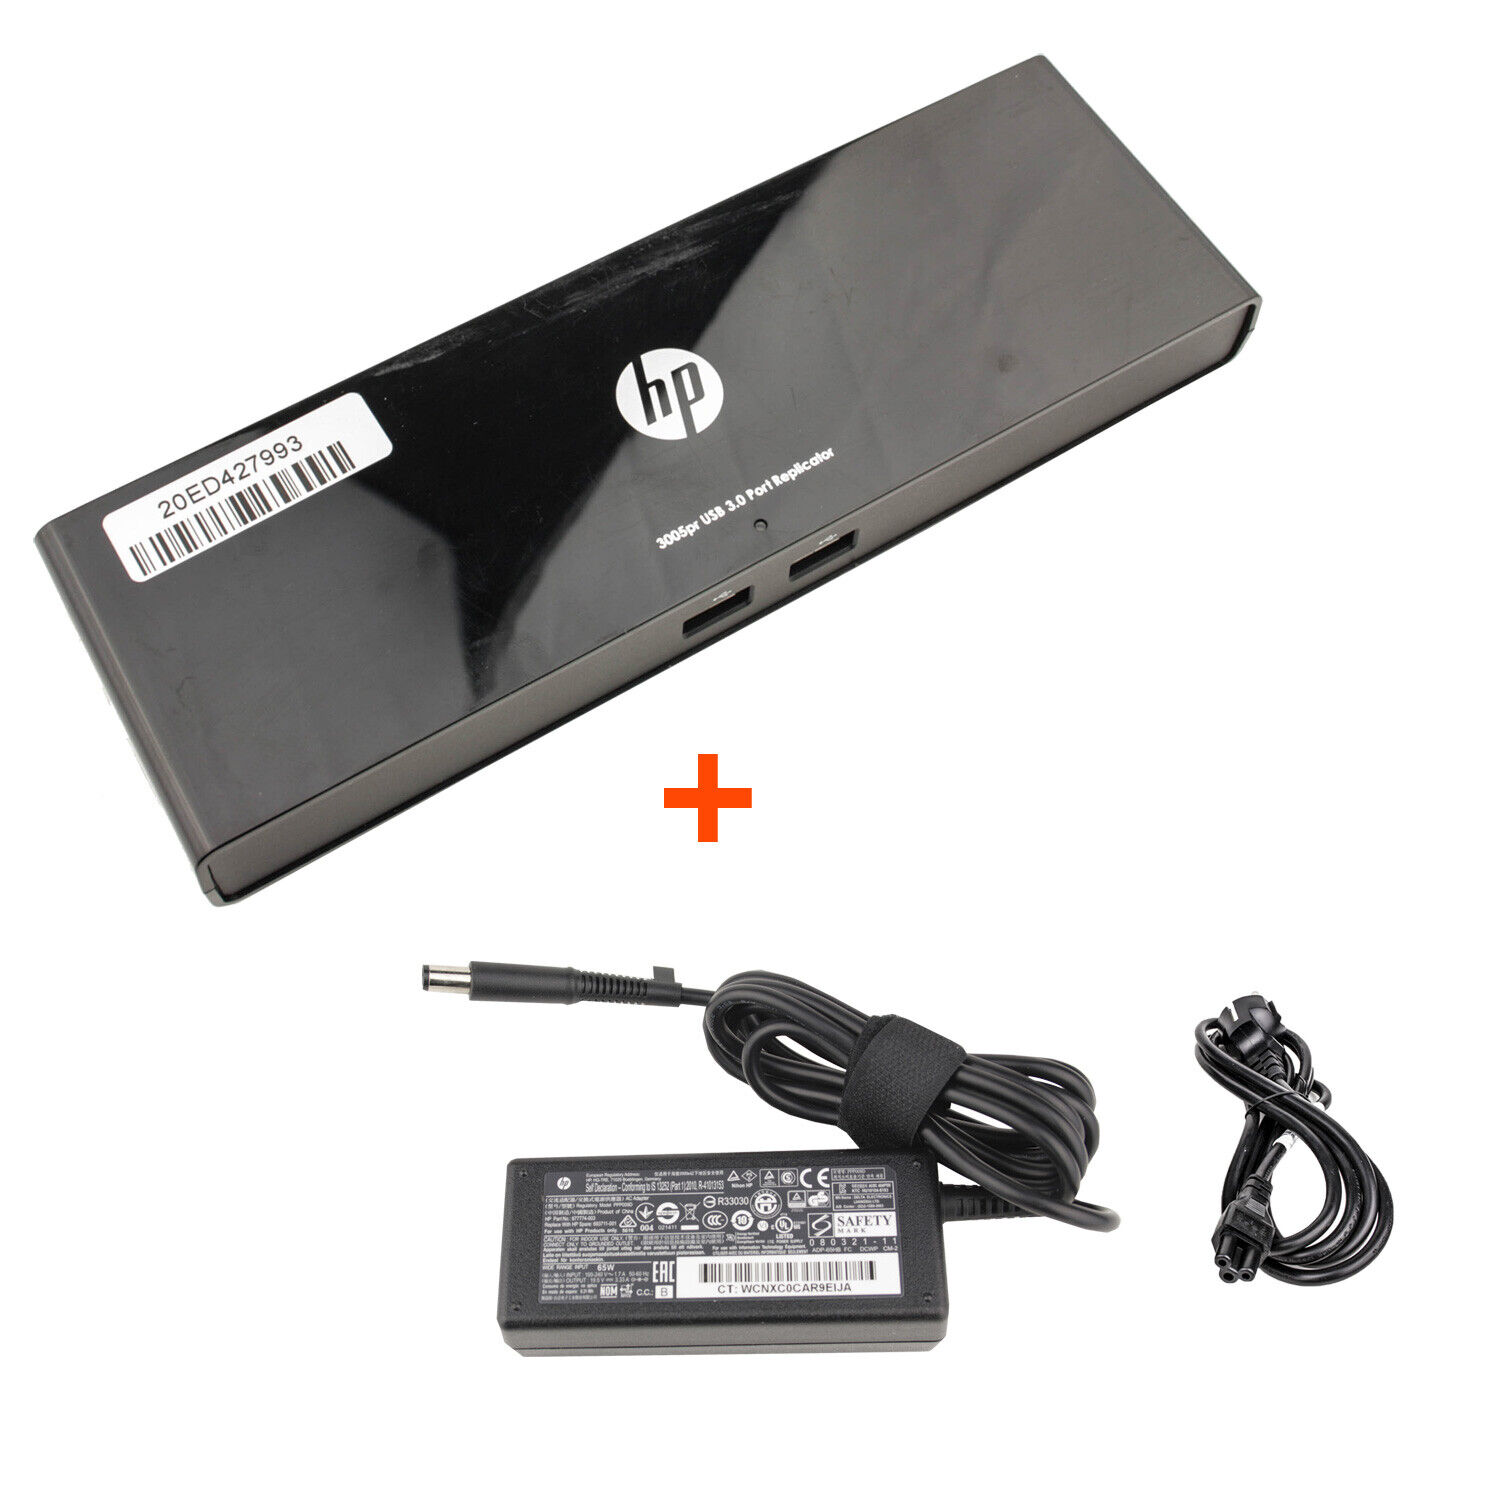 HP Universal Docking Station 3005Pr HSTNN-IX06 USB 3.0 Port Replicator